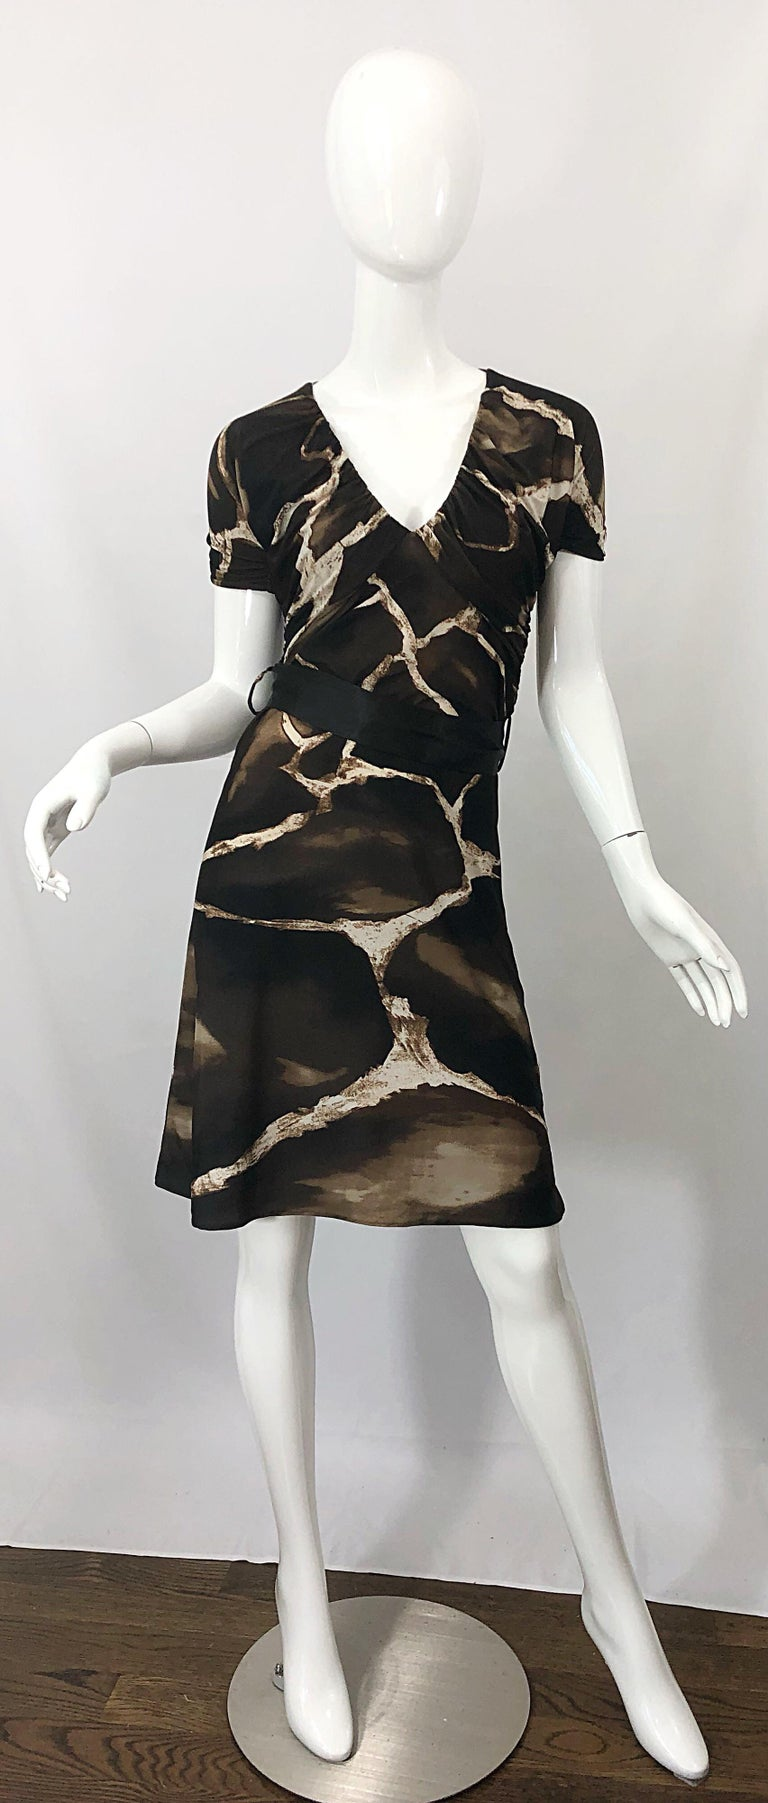 Chic and rare vintage mid / late 80s ROBERTO CAVALLI for NEIMAN MARCUS giraffe print belted short sleeve jersey dress! Features timeless giraffe animal print in chocolate brown and ivory. Flattering ruched tailored bodice and sleeves. Hidden zipper